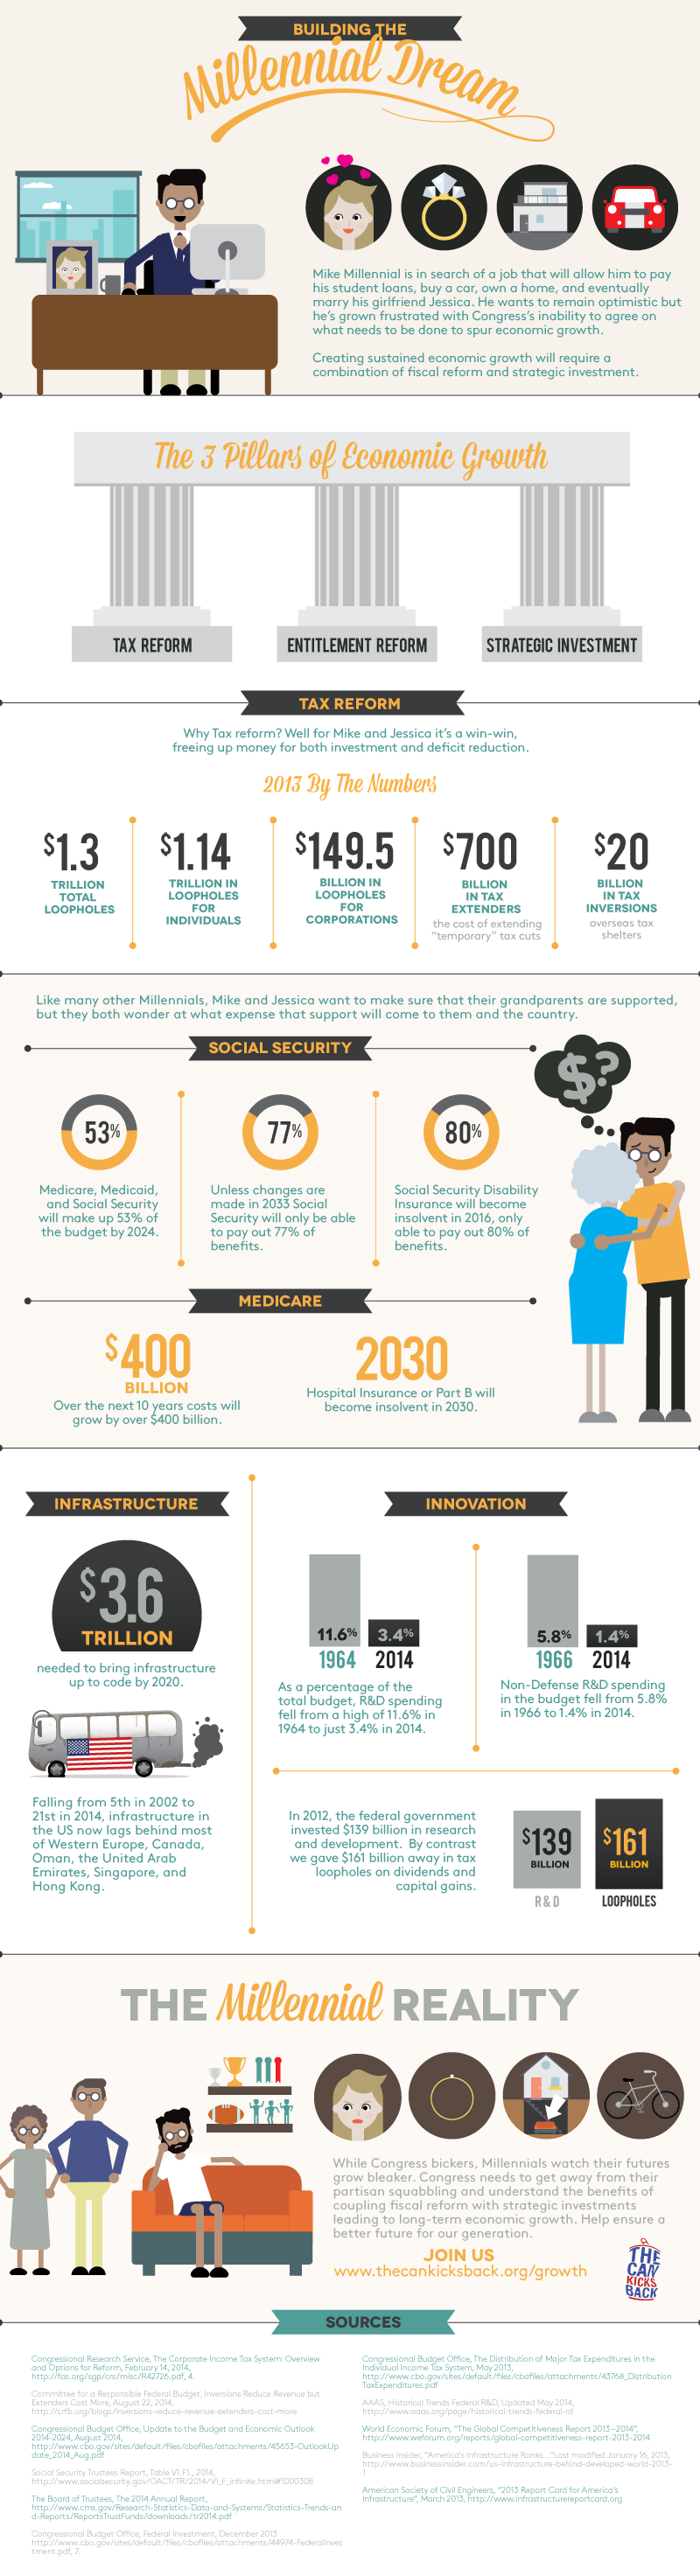 Infographic: Building the Millennial Dream #infographic